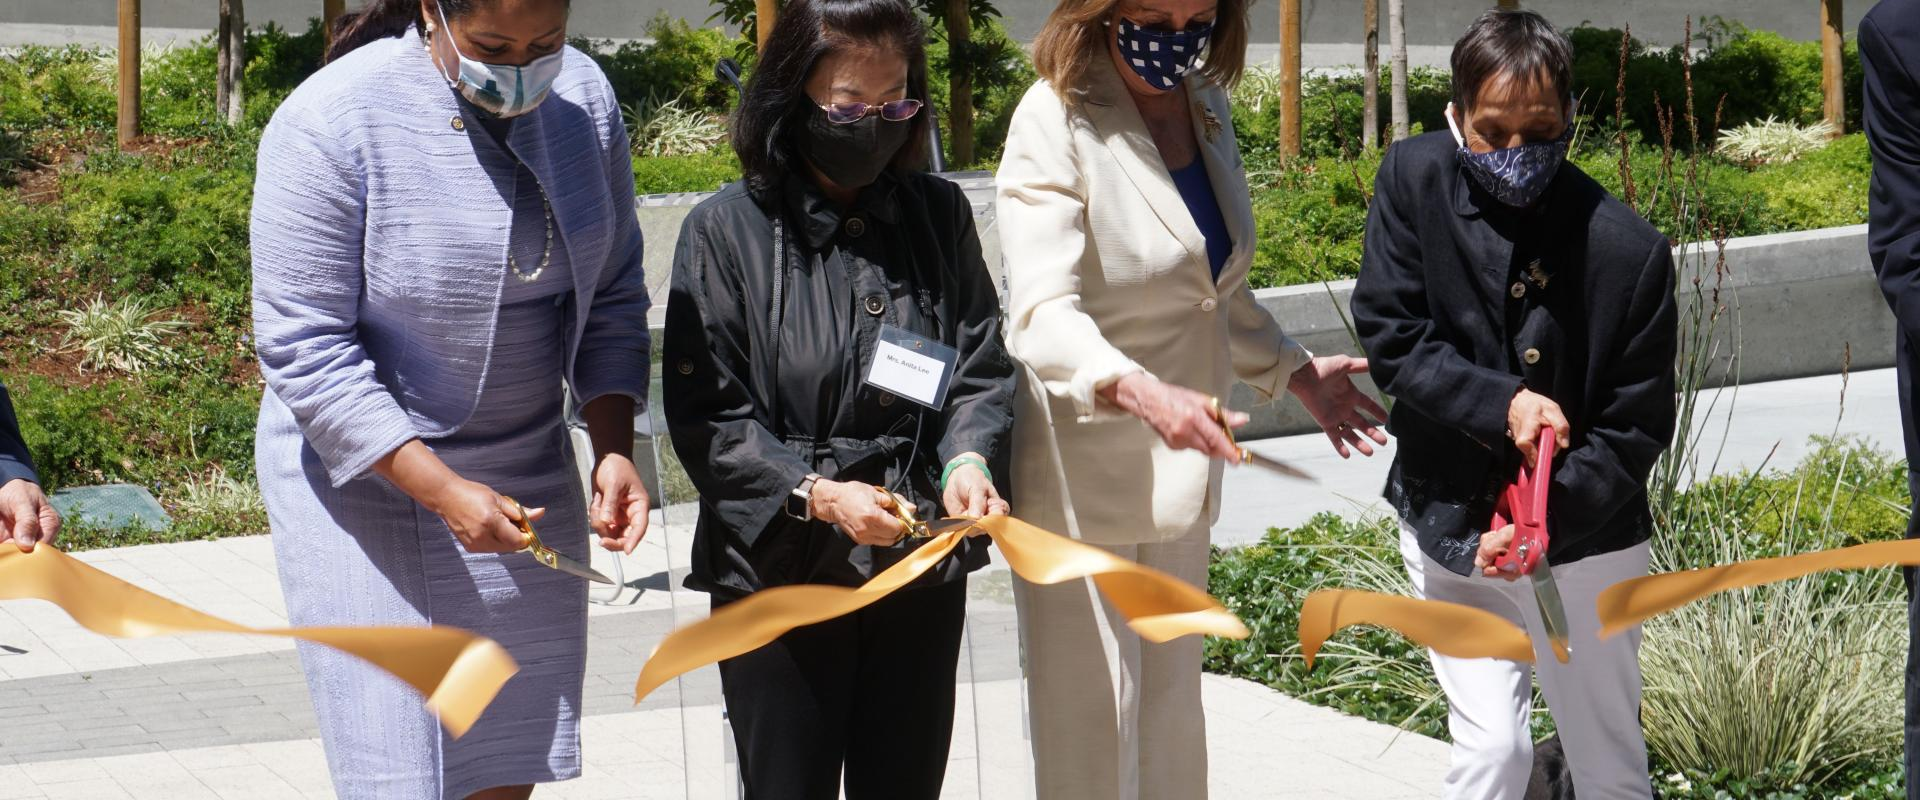 Congresswoman Nancy Pelosi joins Anita Lee, widow of Ed Lee, Mayor London Breed and resident Margie Talavera at the grand opening ceremony of the Edwin M. Lee apartments, named in honor of our late Mayor whose strong leadership created thousands of units